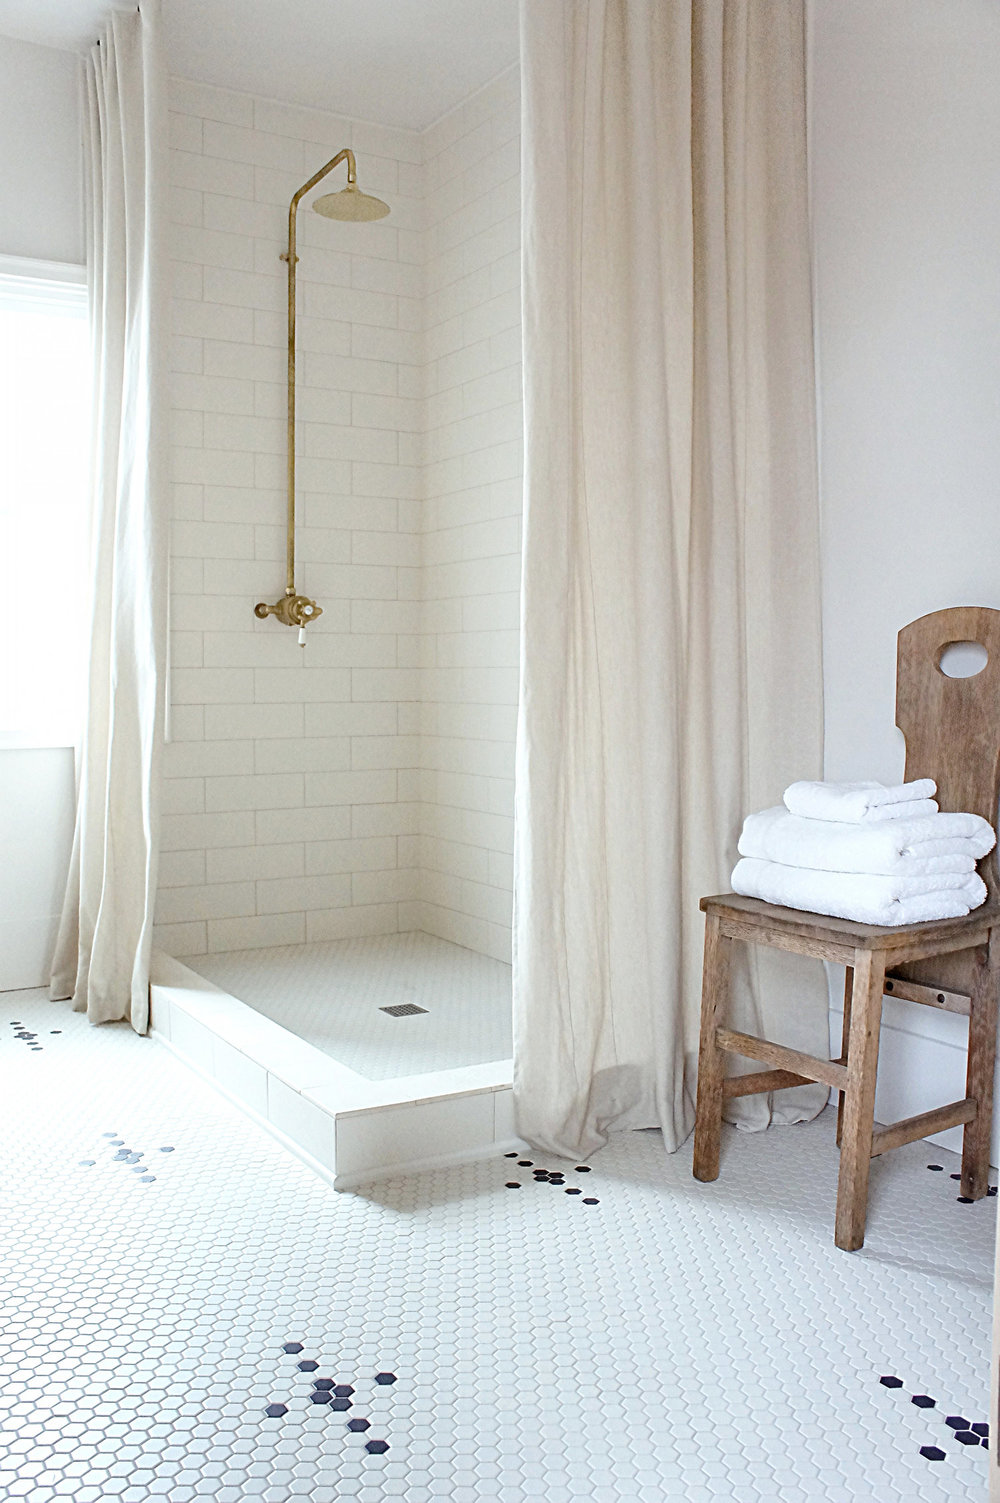 A Guest Bathroom Renovation The Plan Boxwood Avenue - Simple bathroom renovations